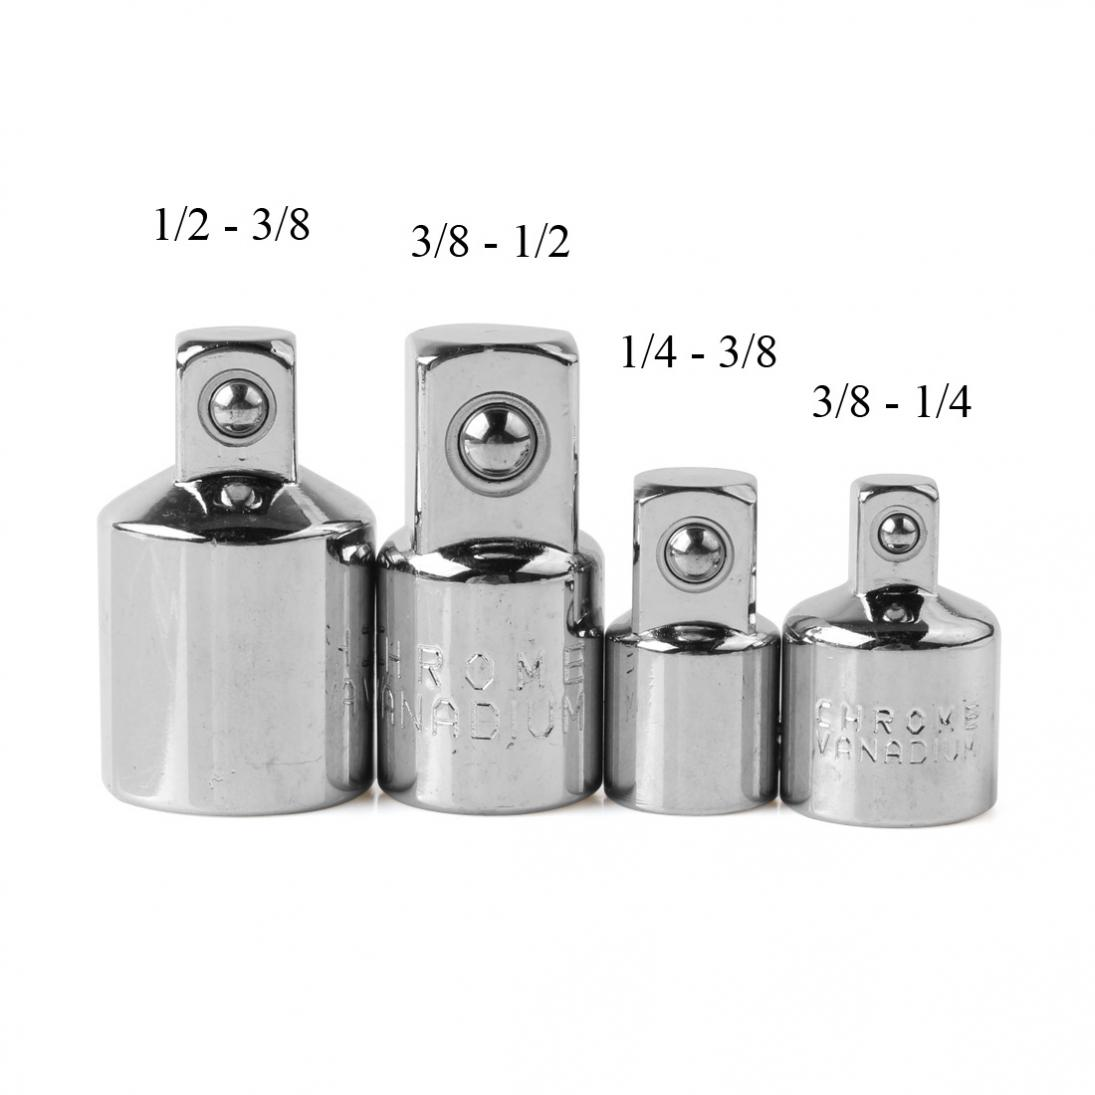 4pcs 14 38 12 drive socket adapter converter reducer air